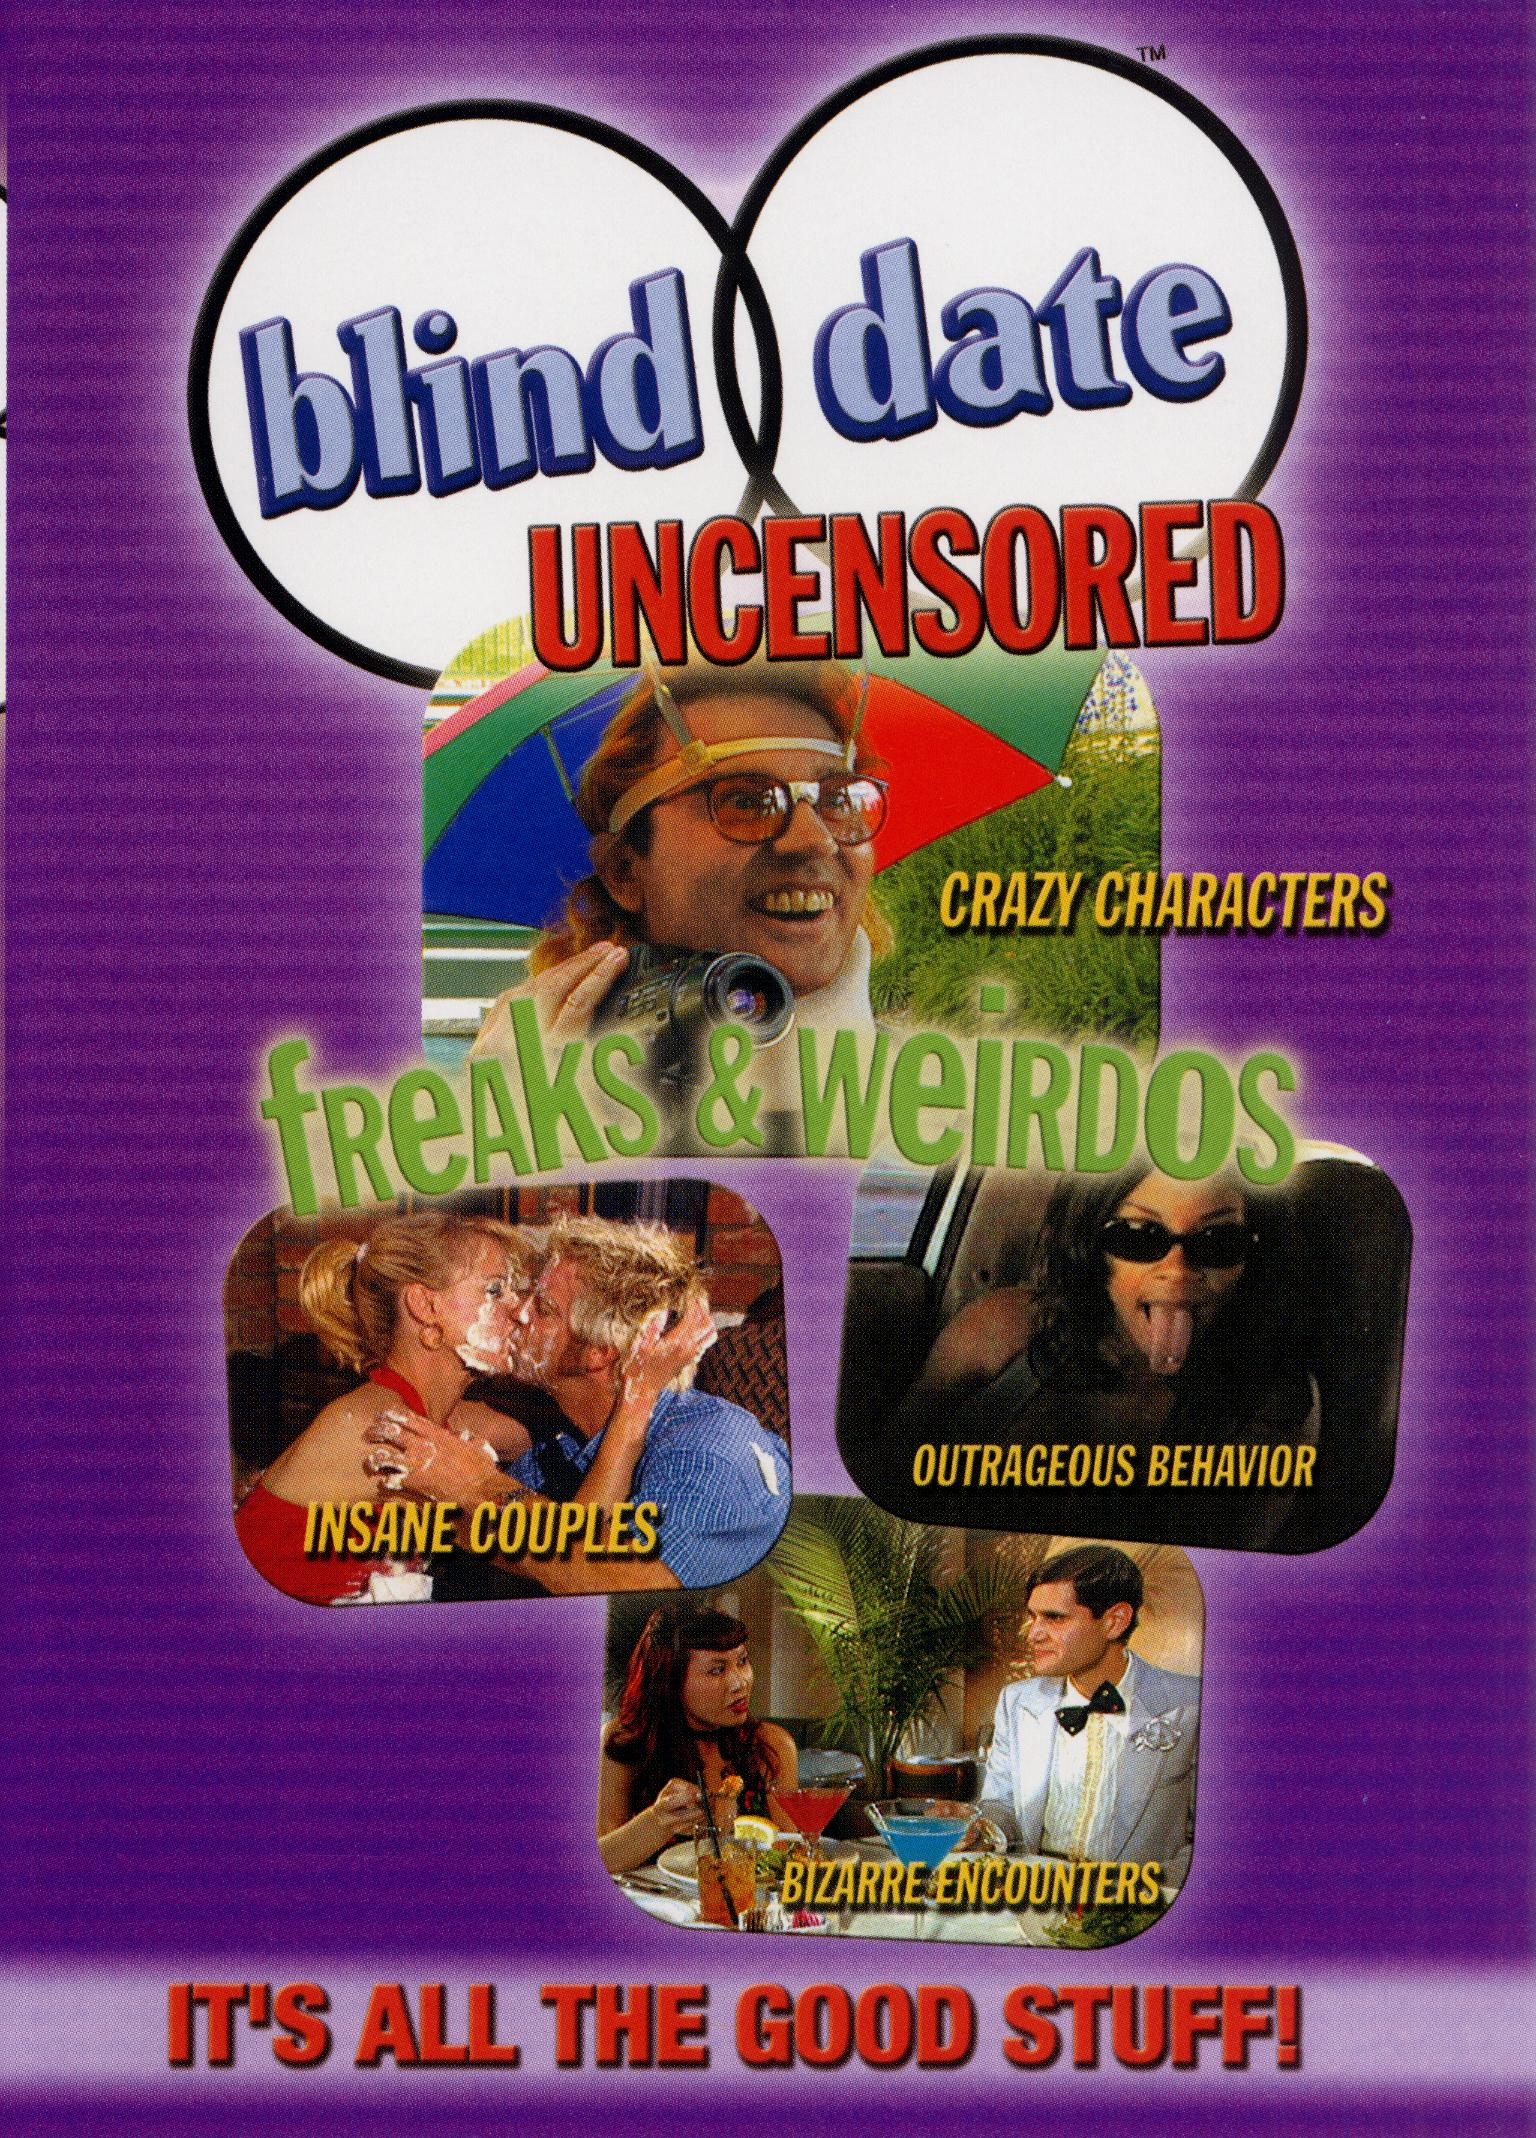 Blind Date: Freaks & Weirdos